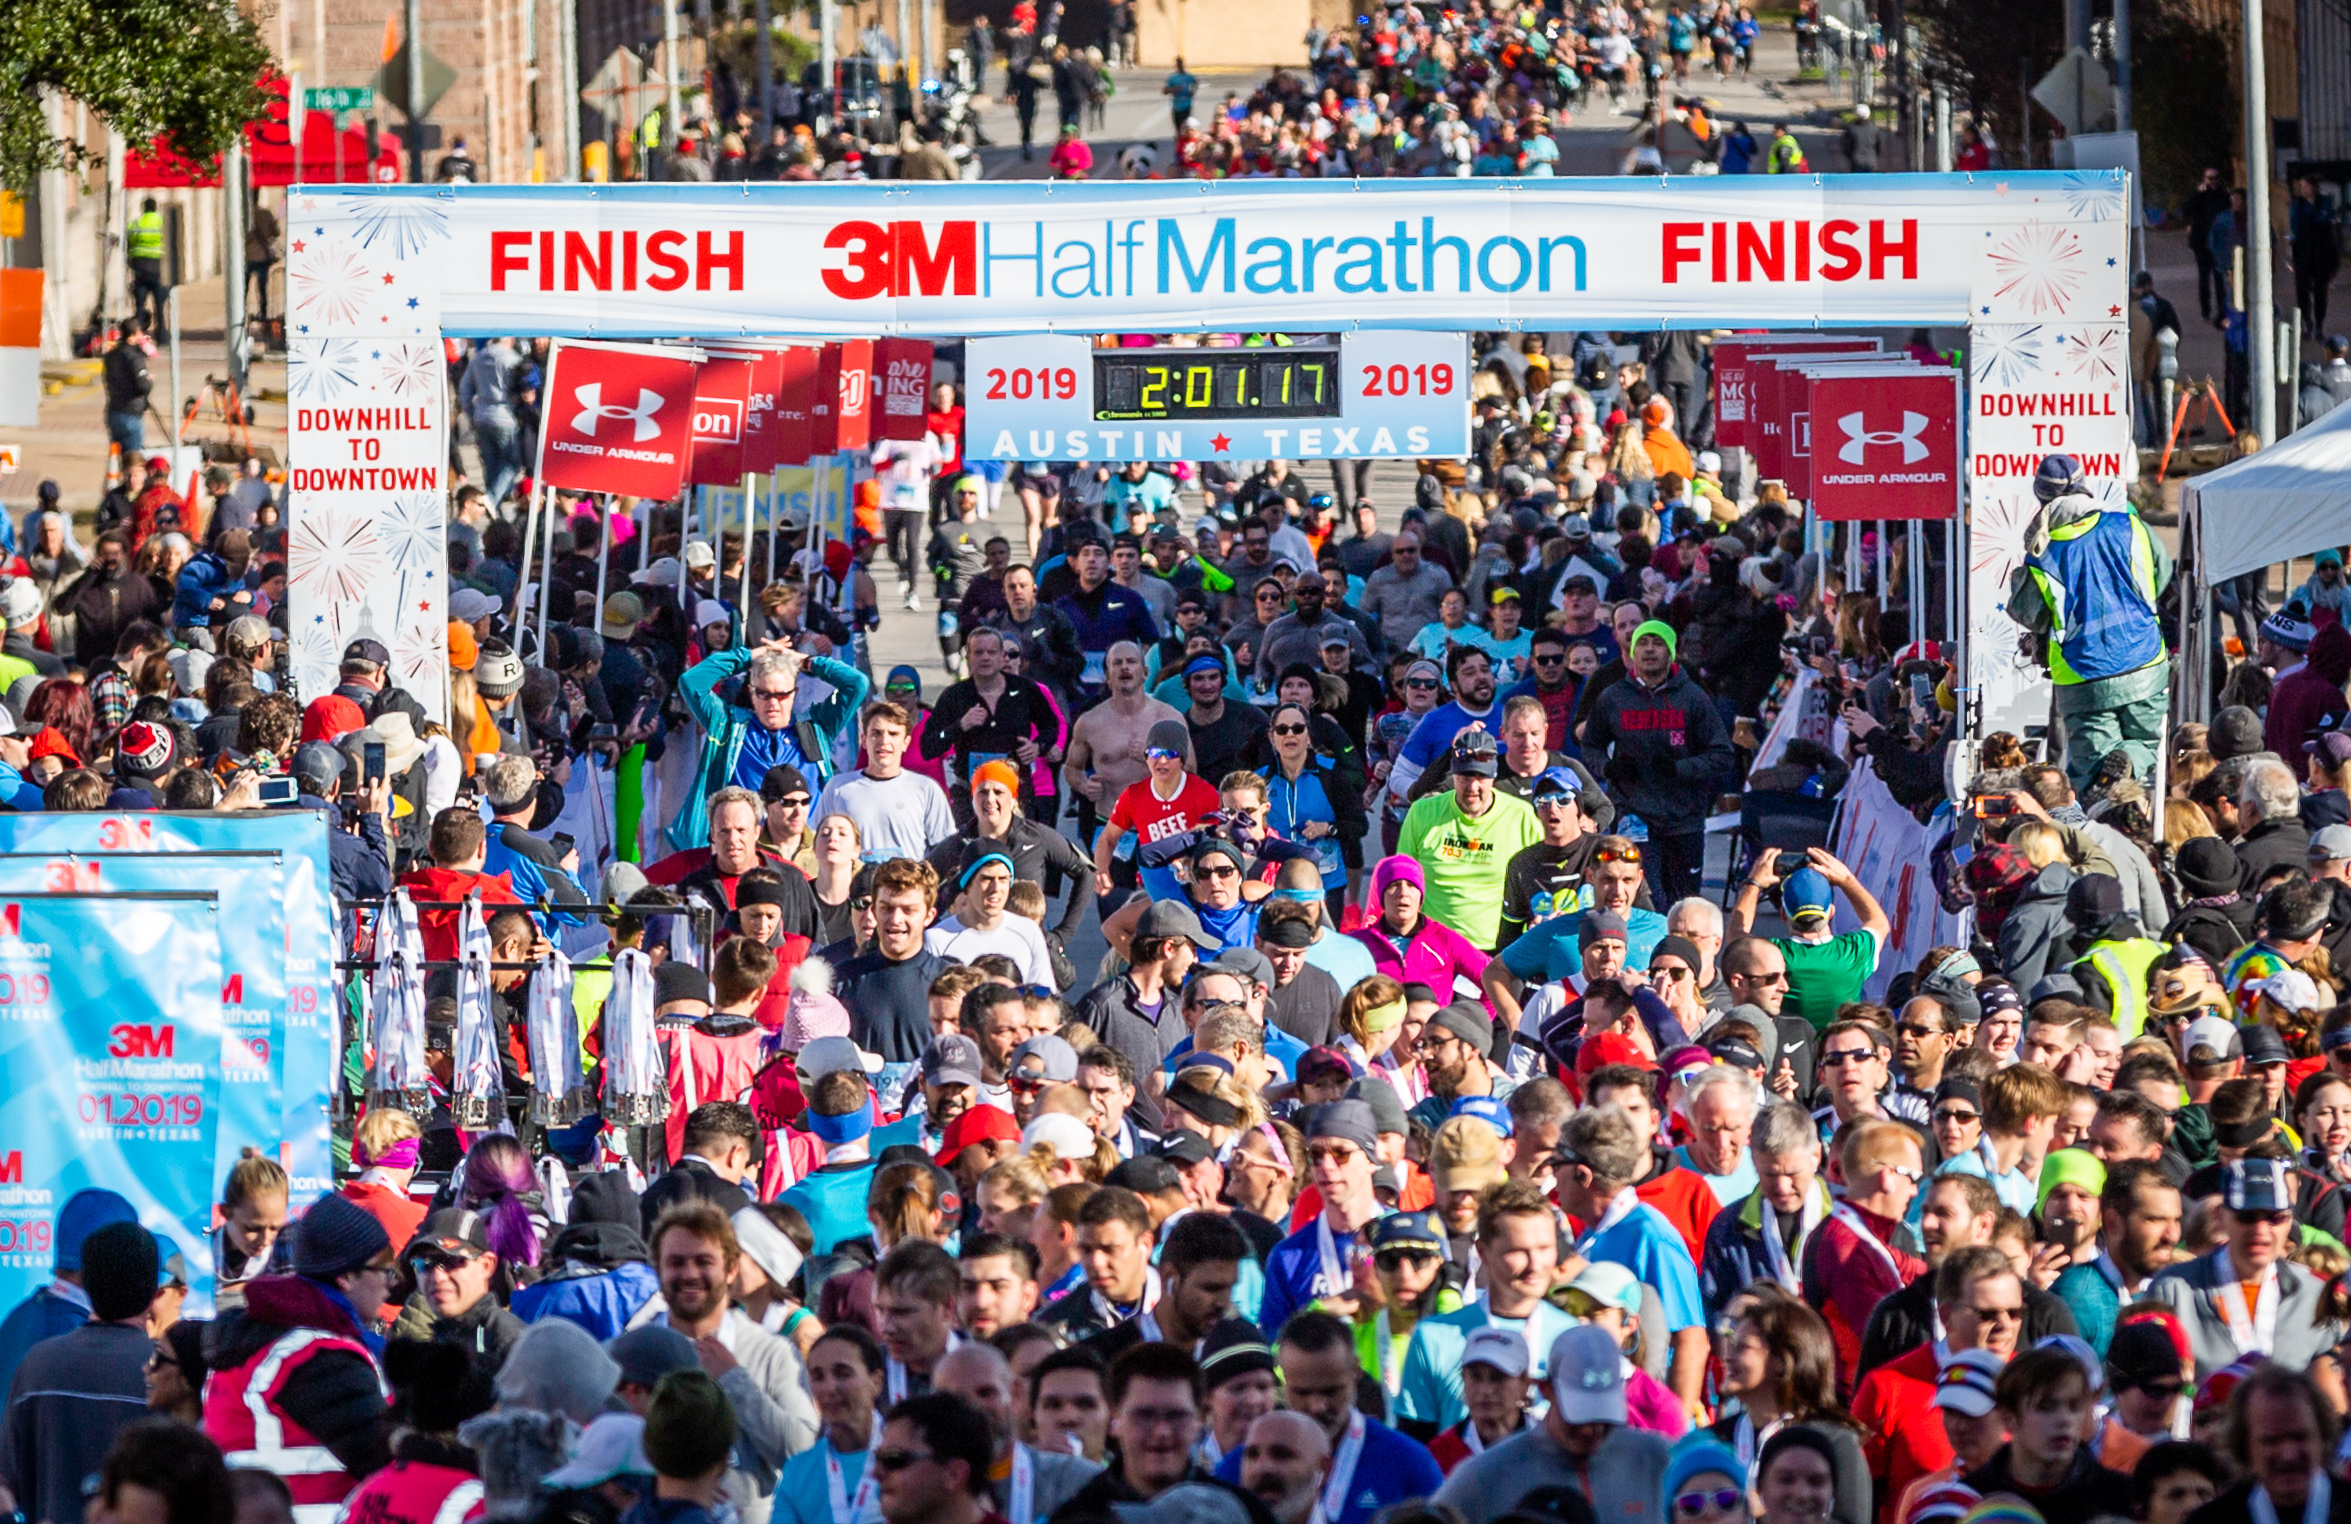 The largest field in 3M Half Marathon history enjoyed perfect weather on Sunday, Jan. 20th.